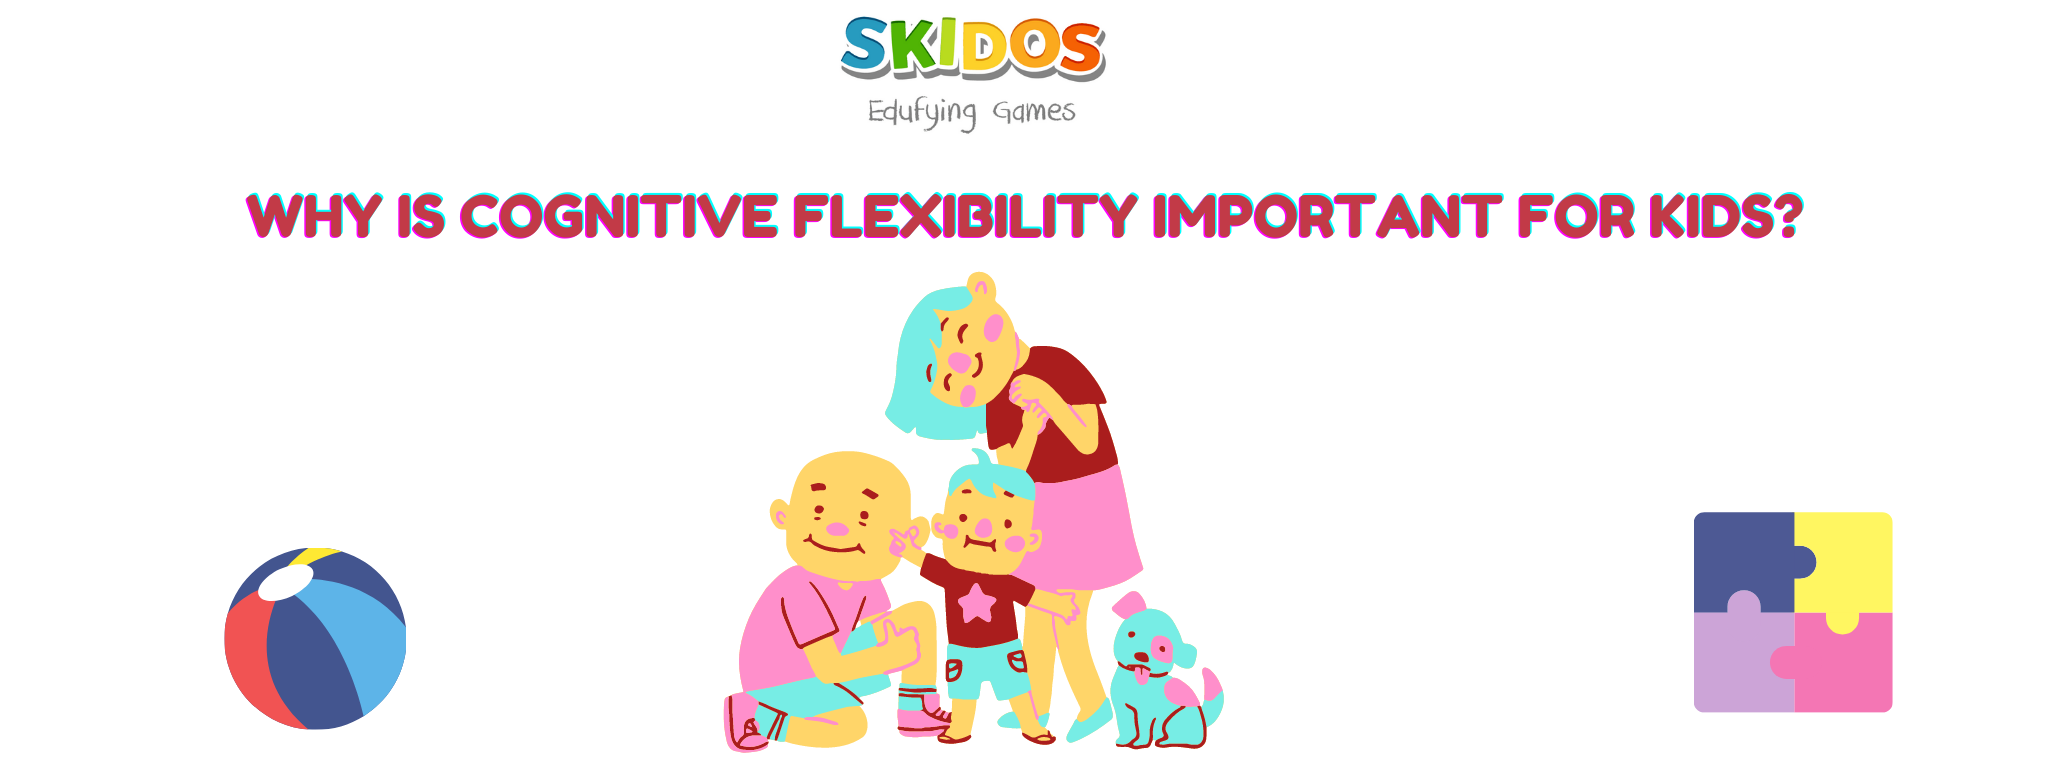 Why is cognitive flexibility important for kids